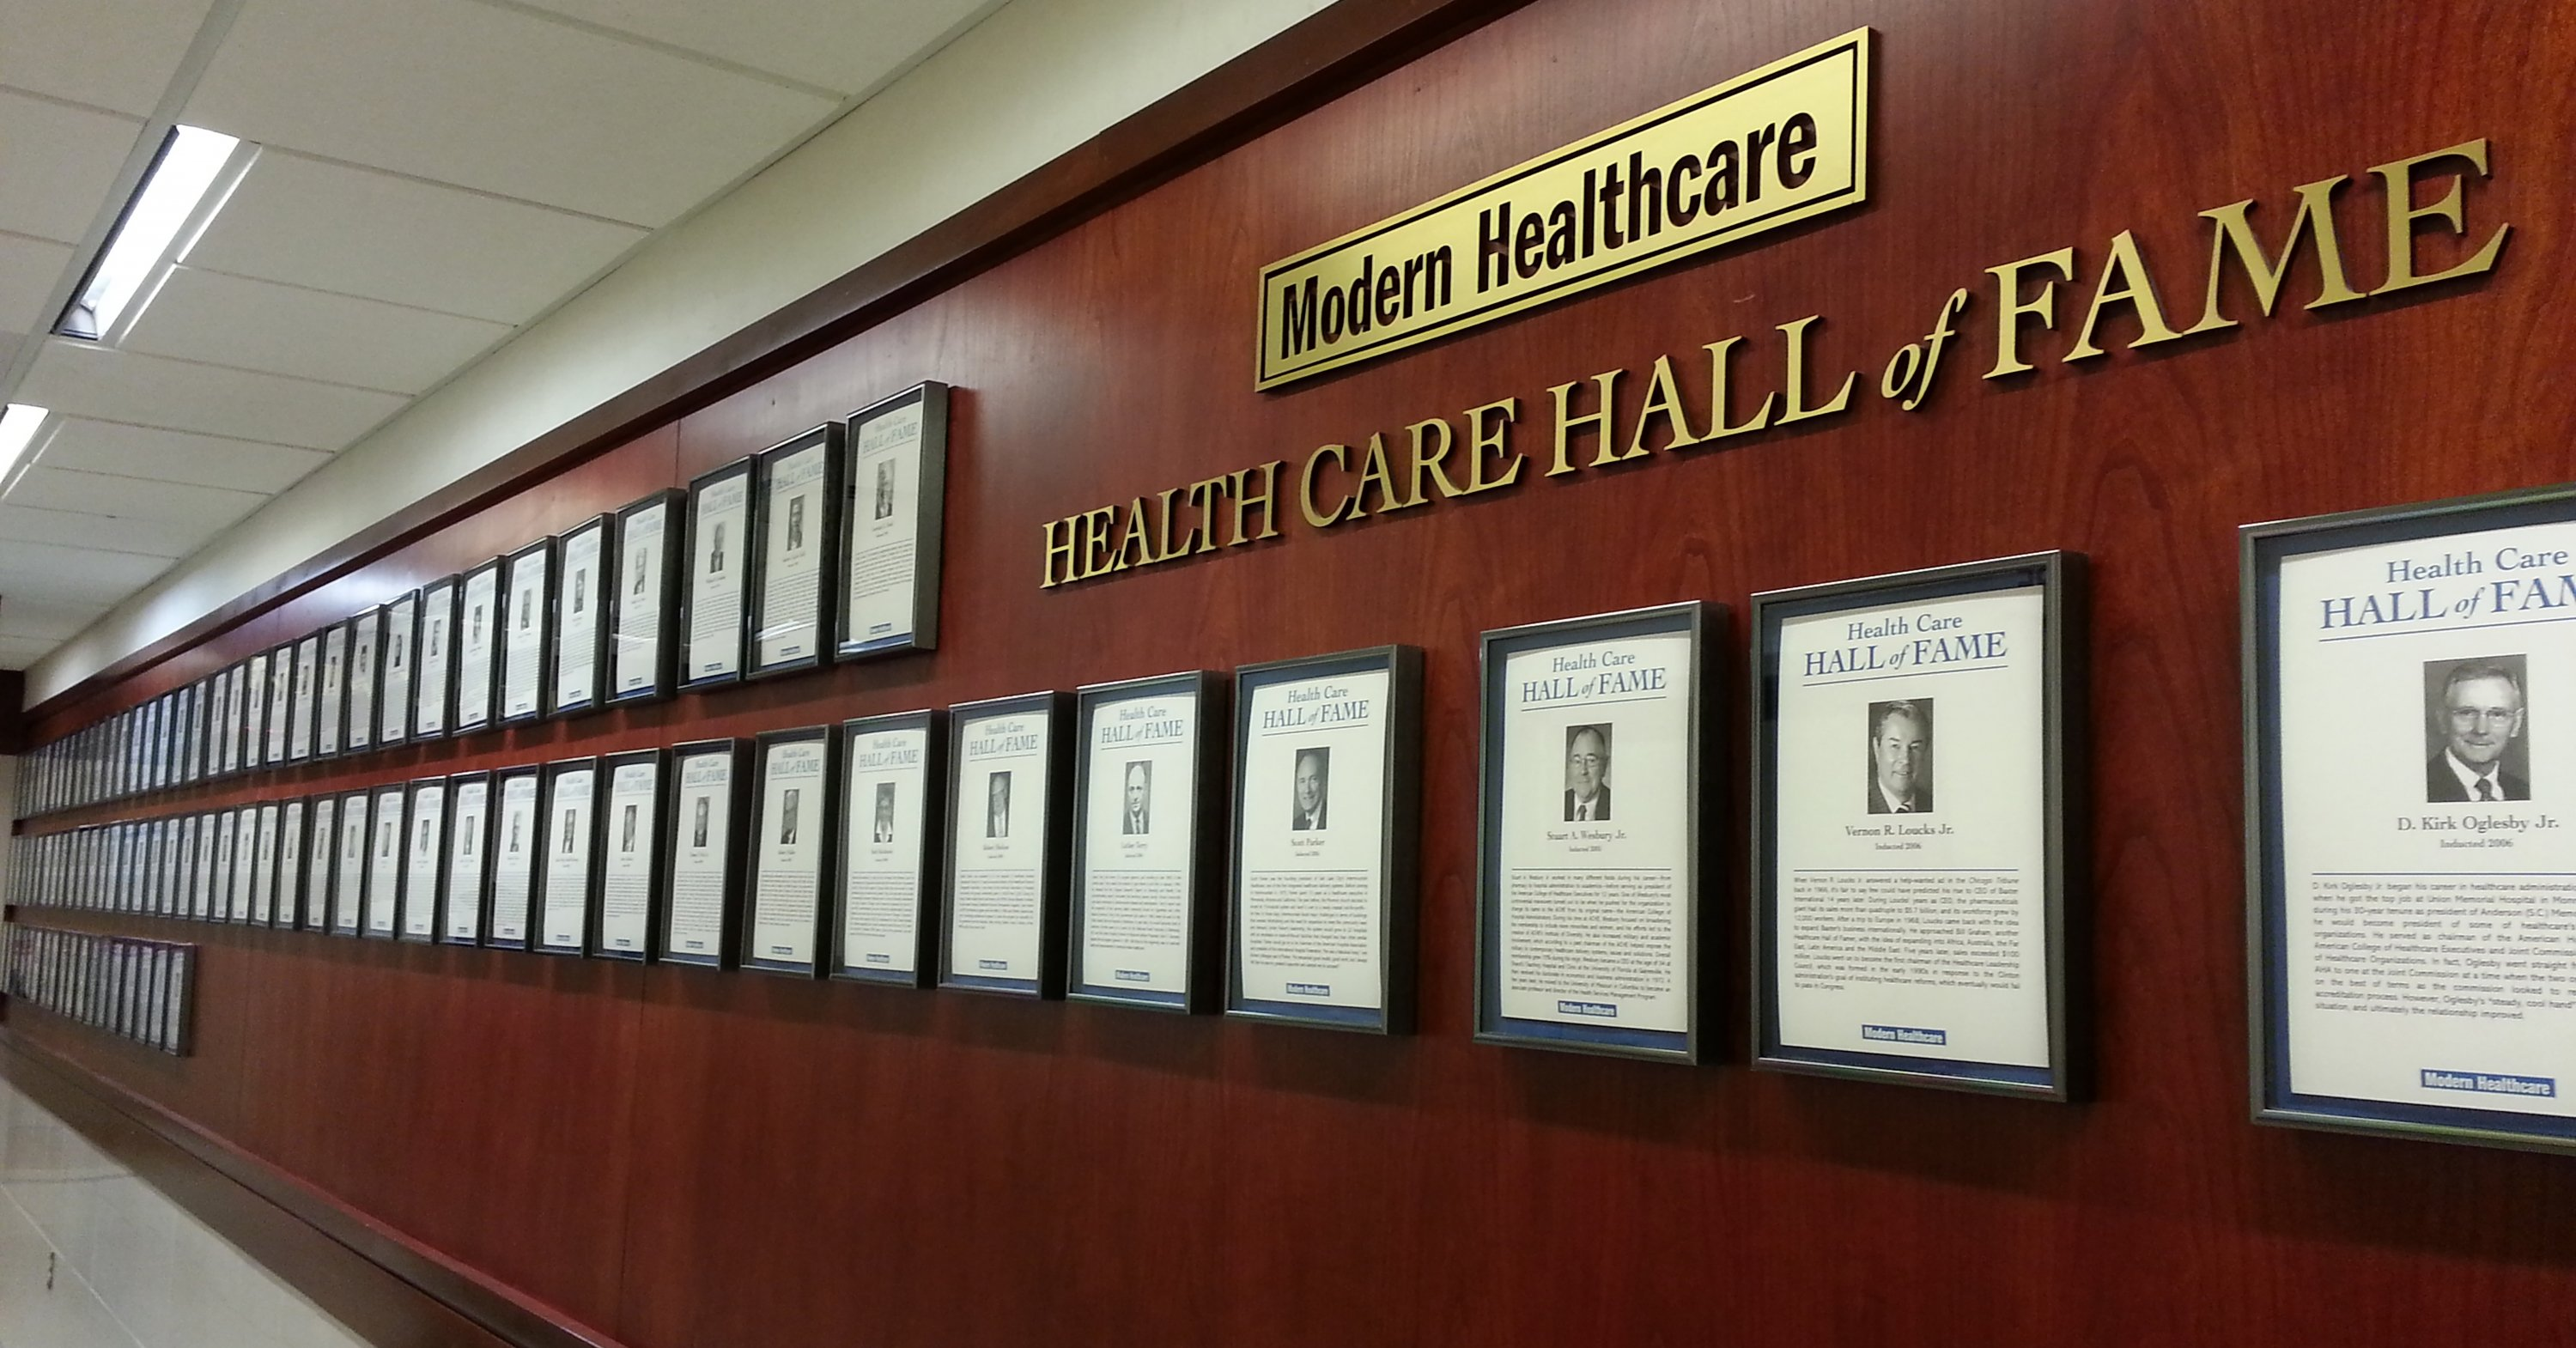 Pennsylvania Hospital: A large dose of history along with healthcare